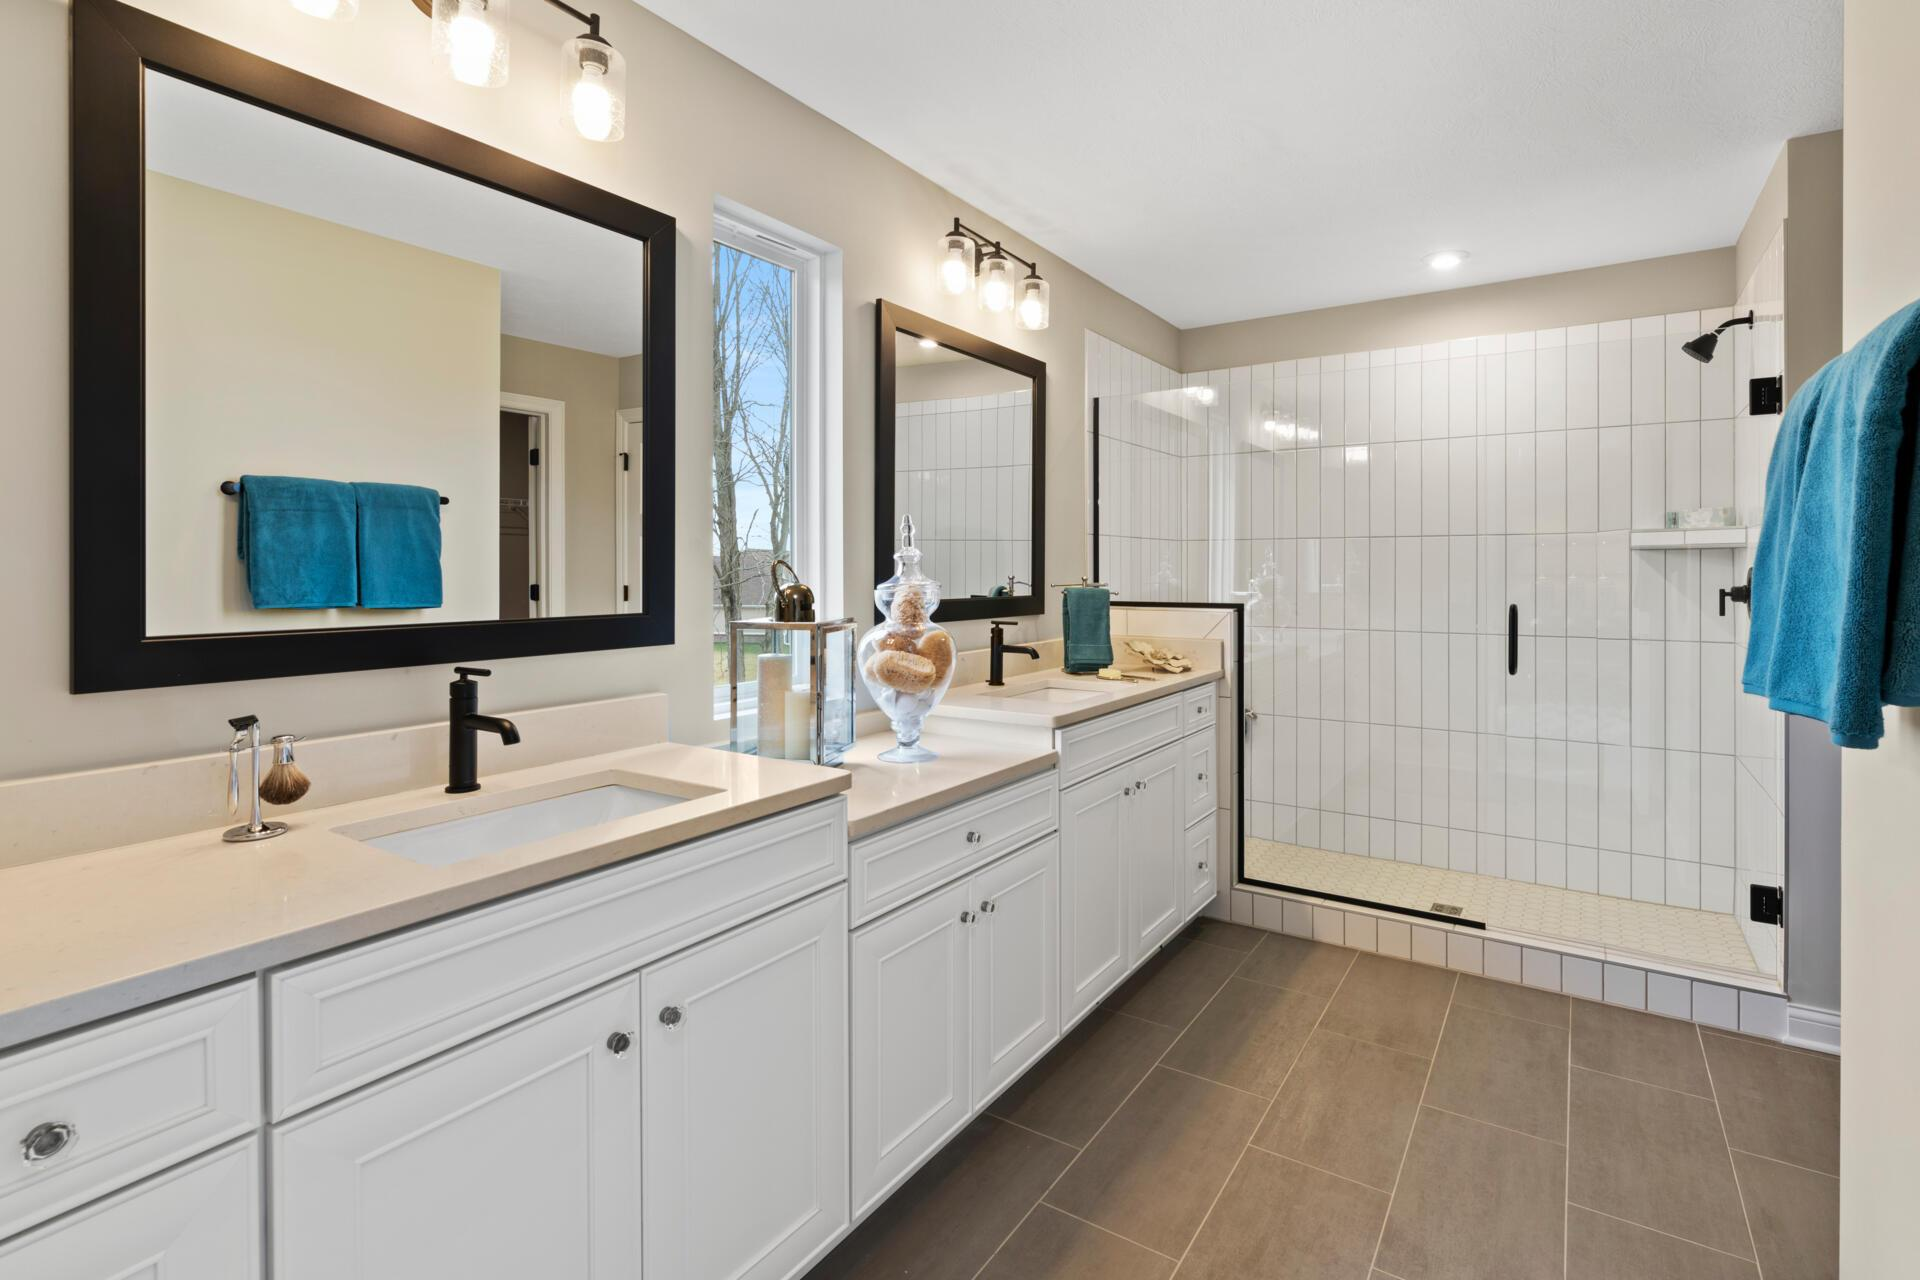 Bathroom featured in the Buchanan By Drees Homes in Indianapolis, IN